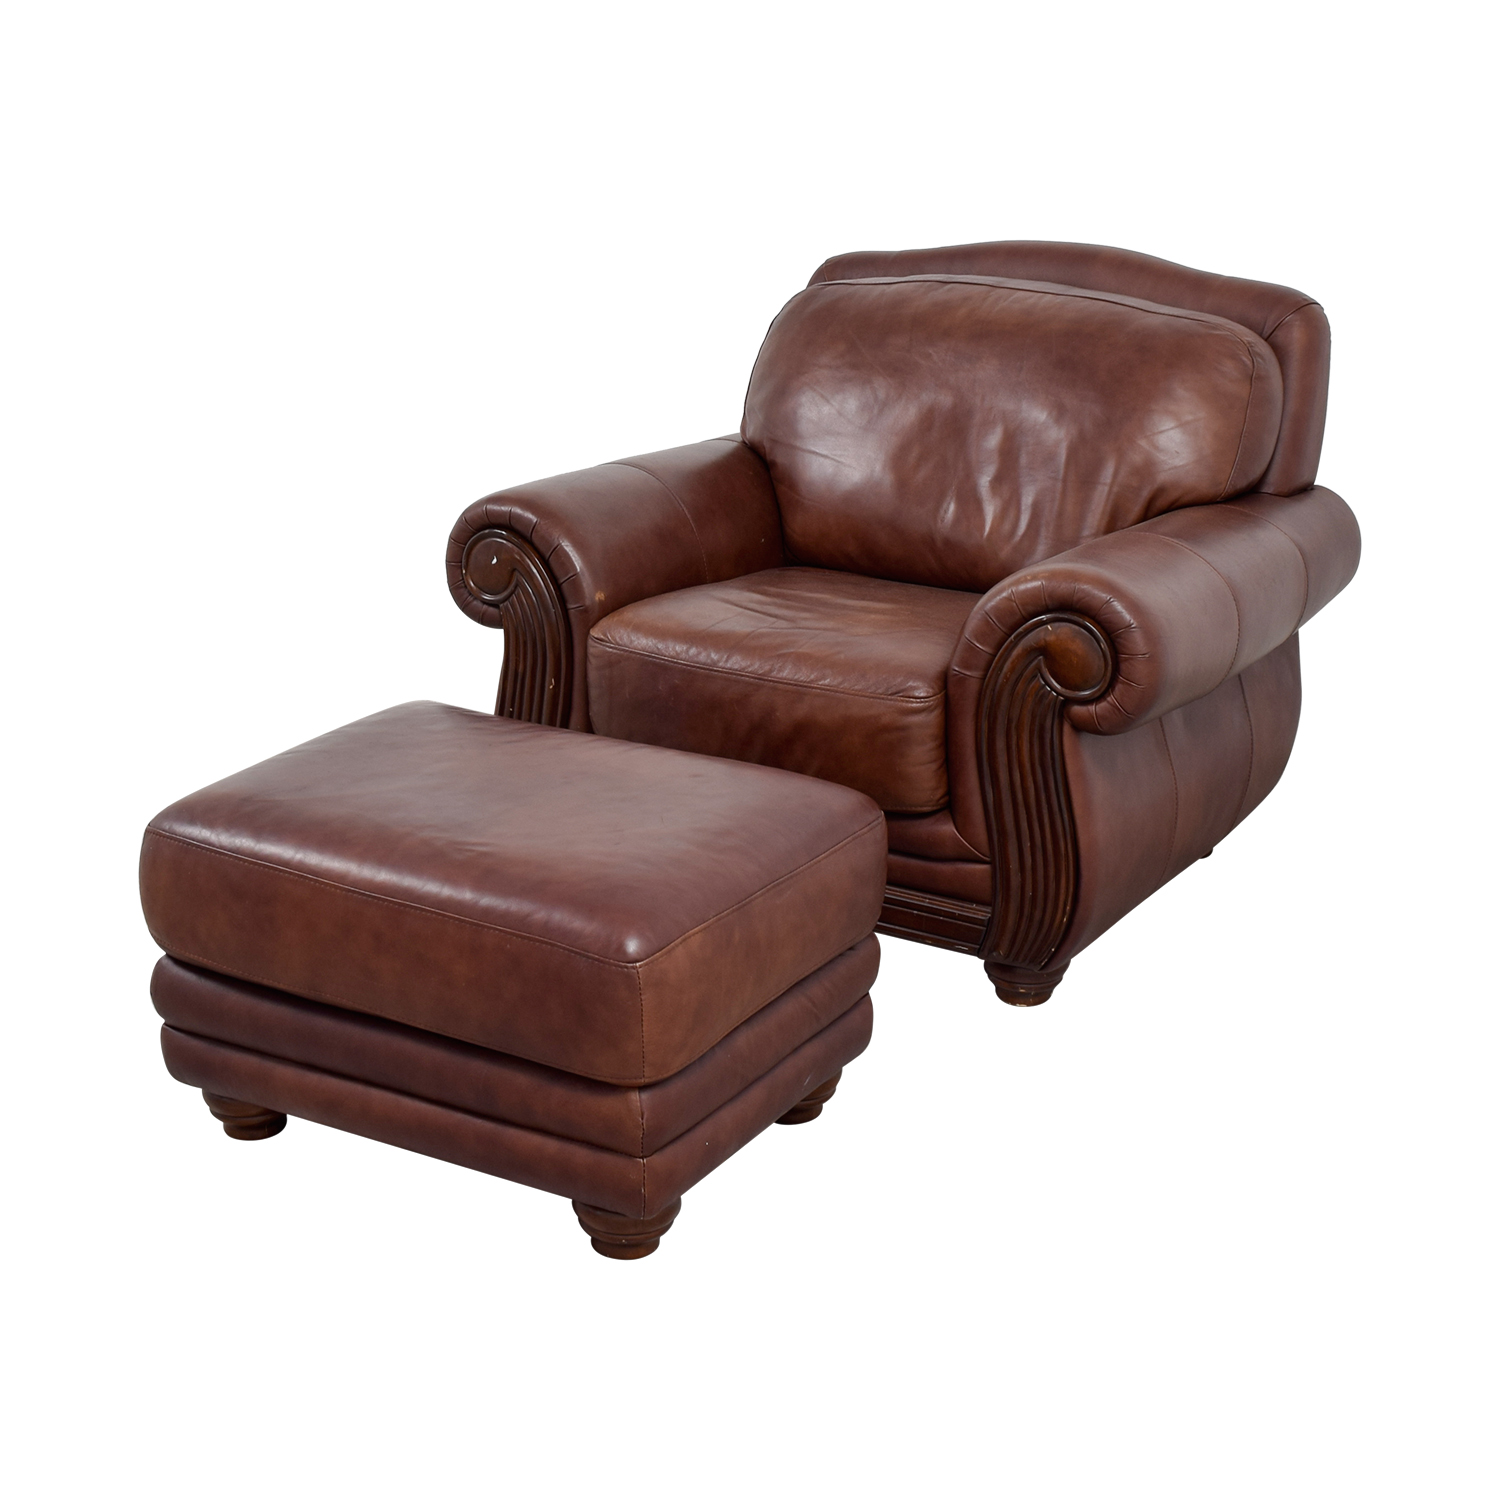 5% OFF - Rooms To Go Rooms To Go Brown Leather Chair and Ottoman / Chairs